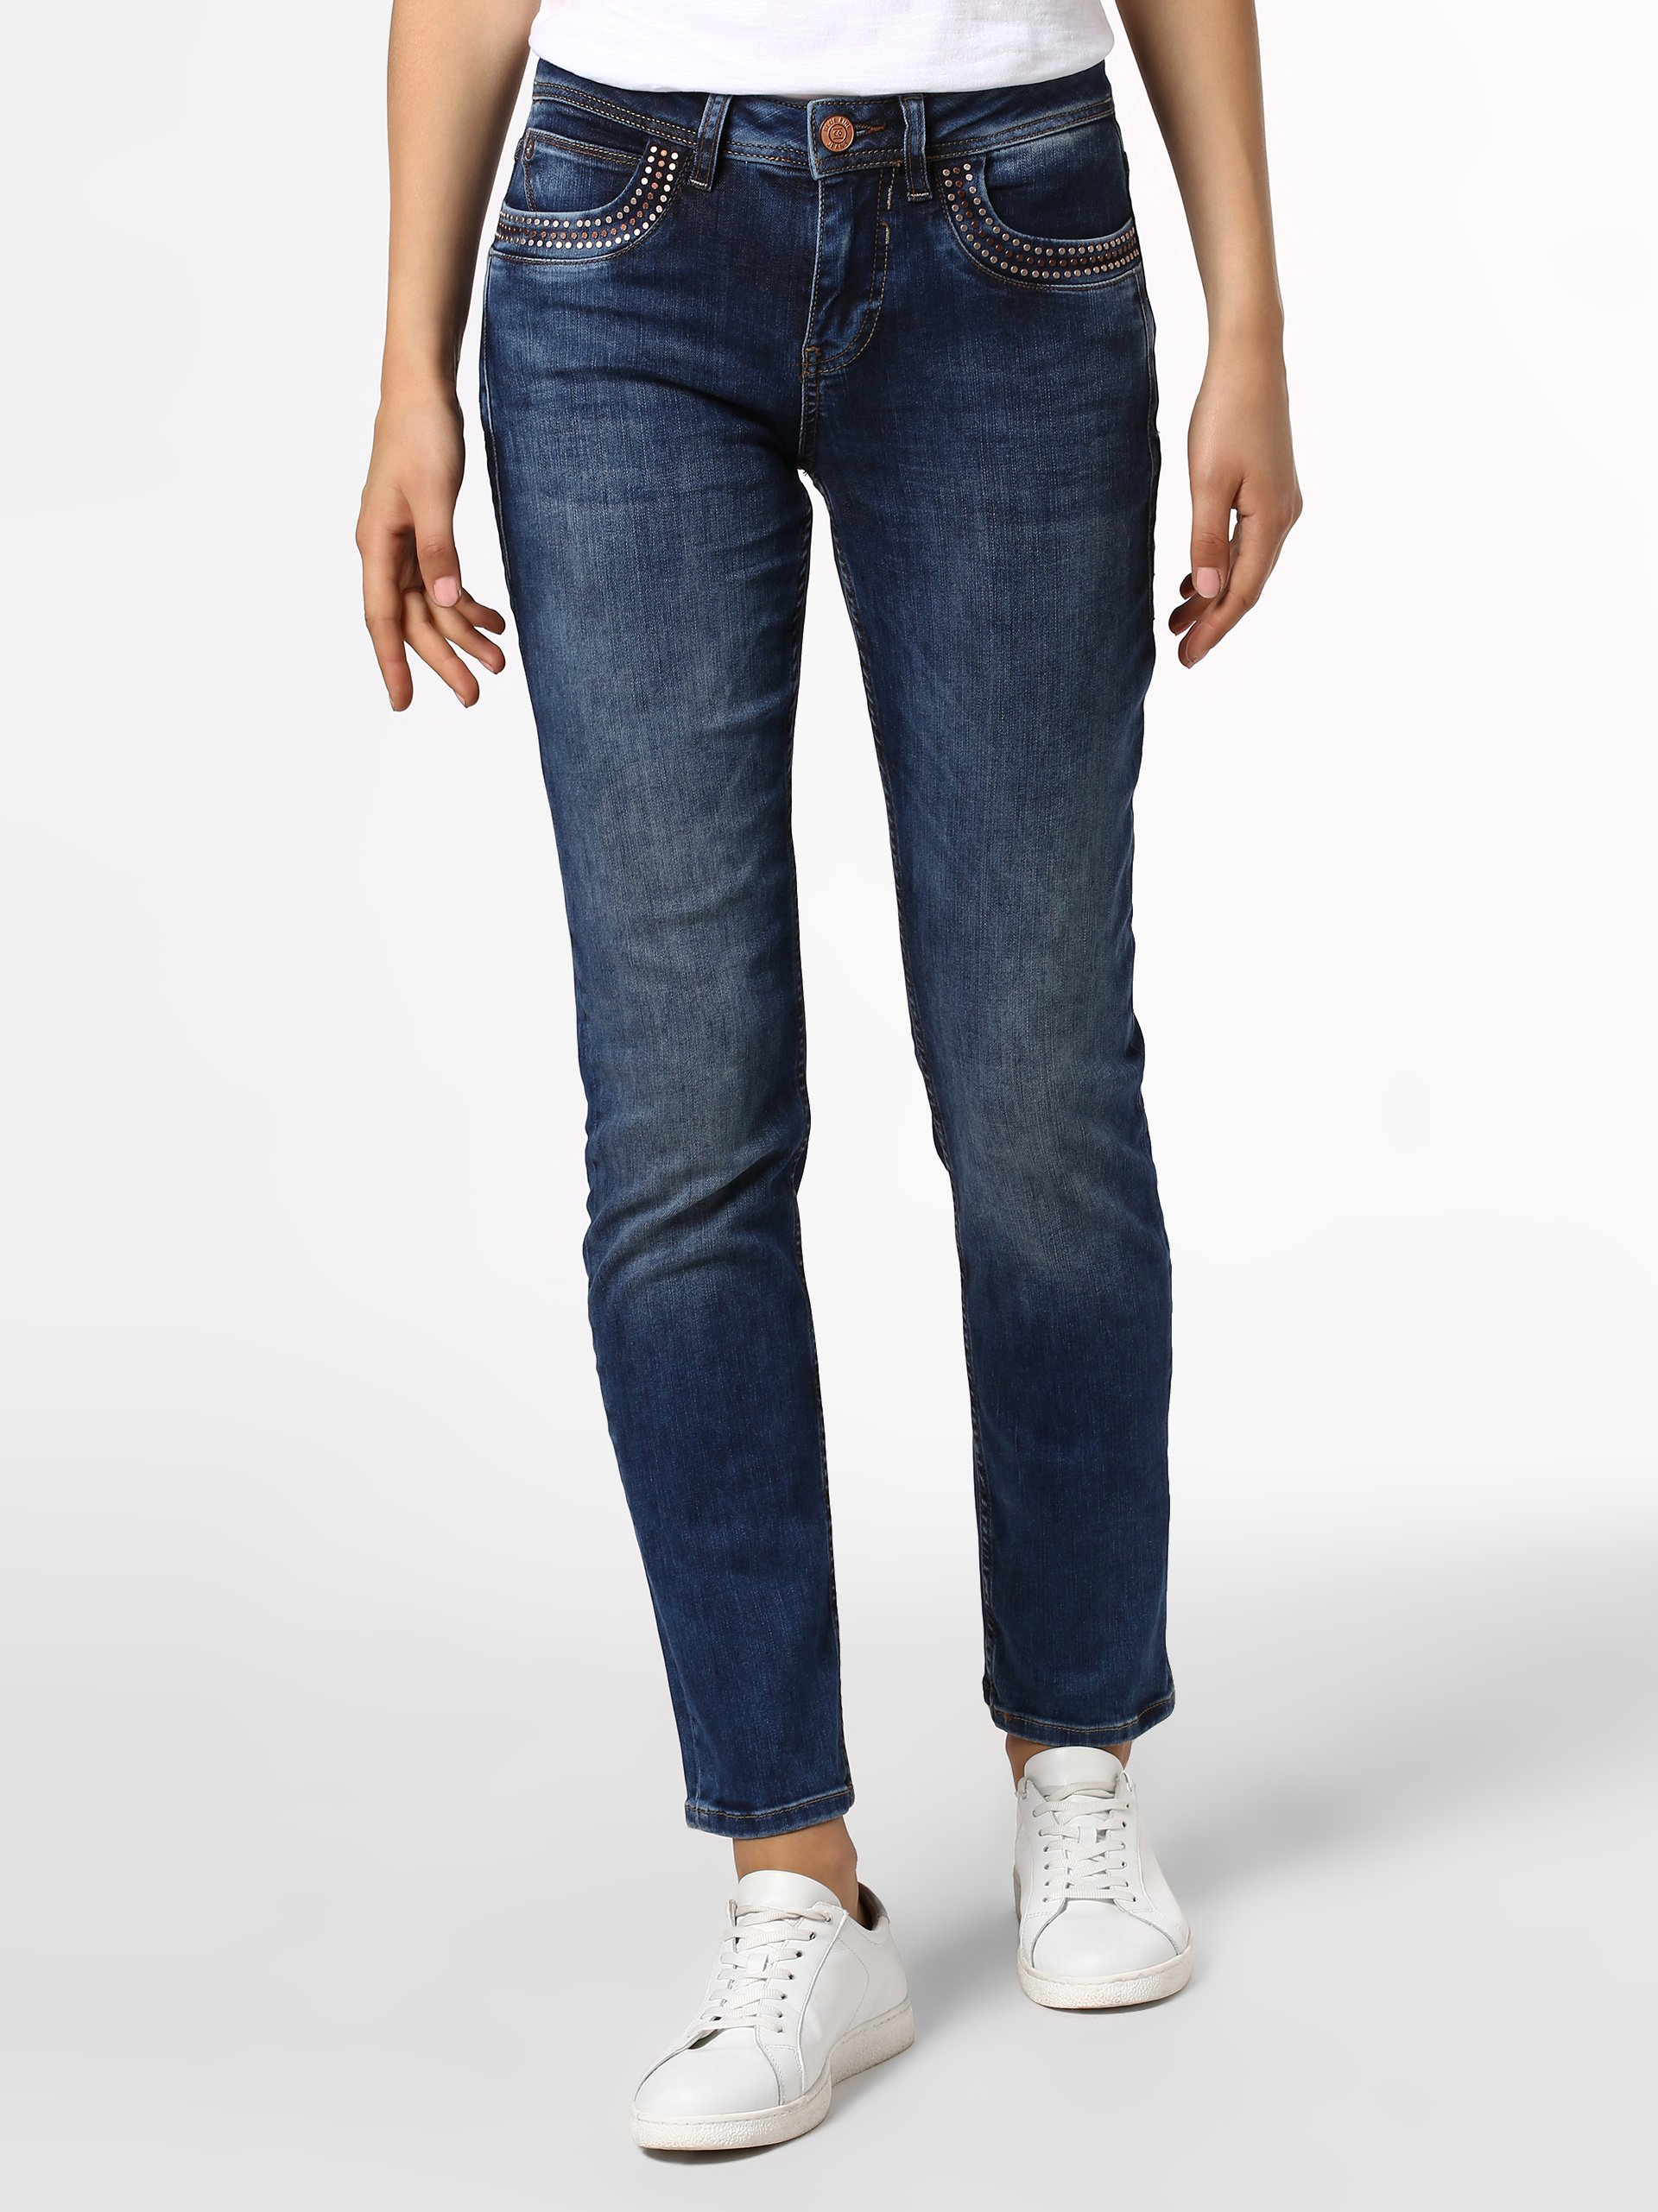 Blue Fire Damen Jeans - Nancy